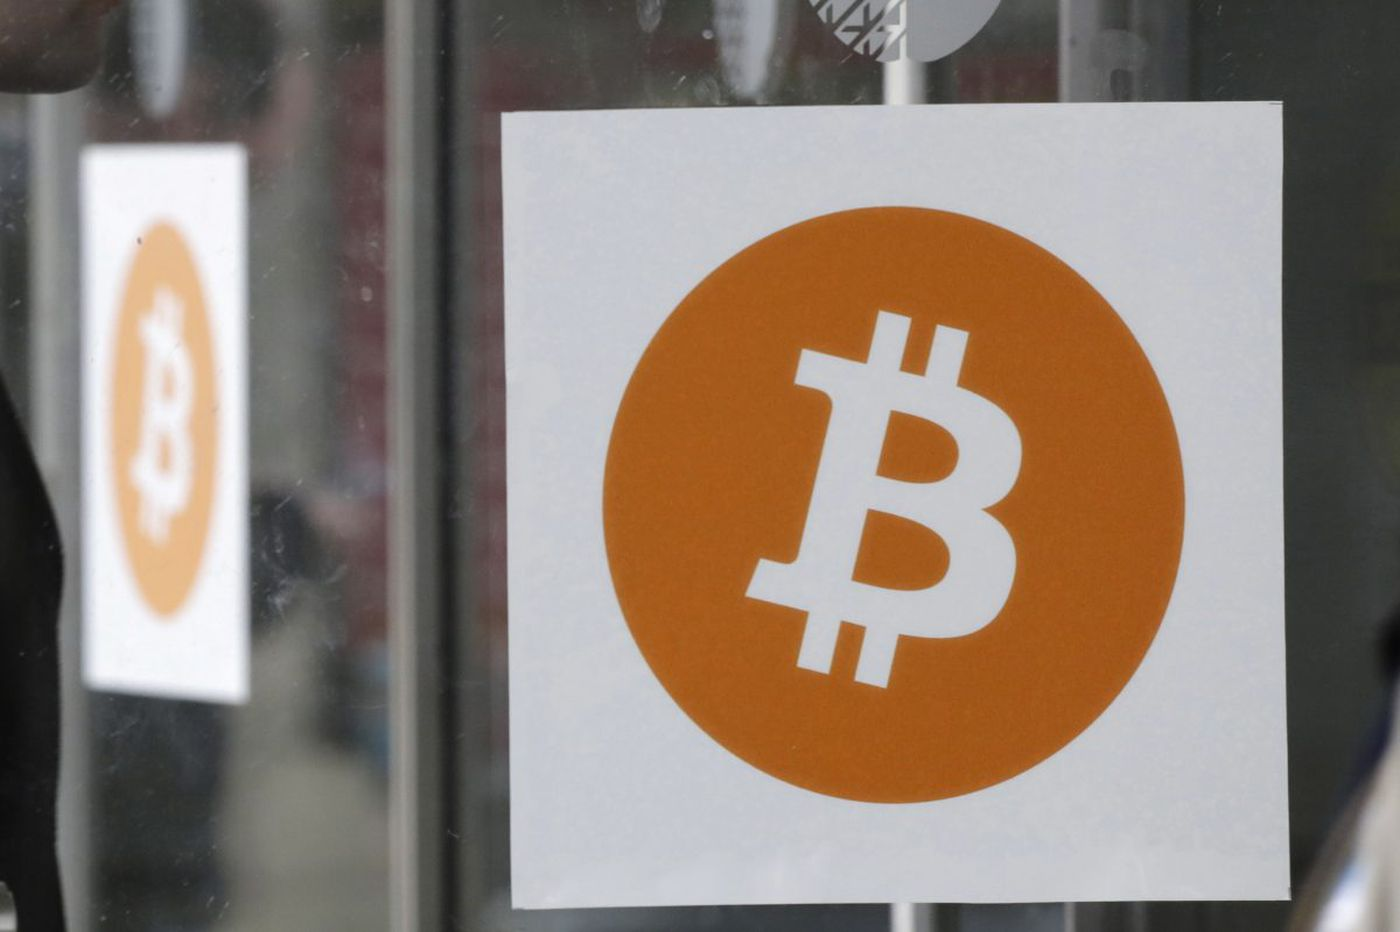 Case to proceed against Montco man accused in $50M bitcoin heist